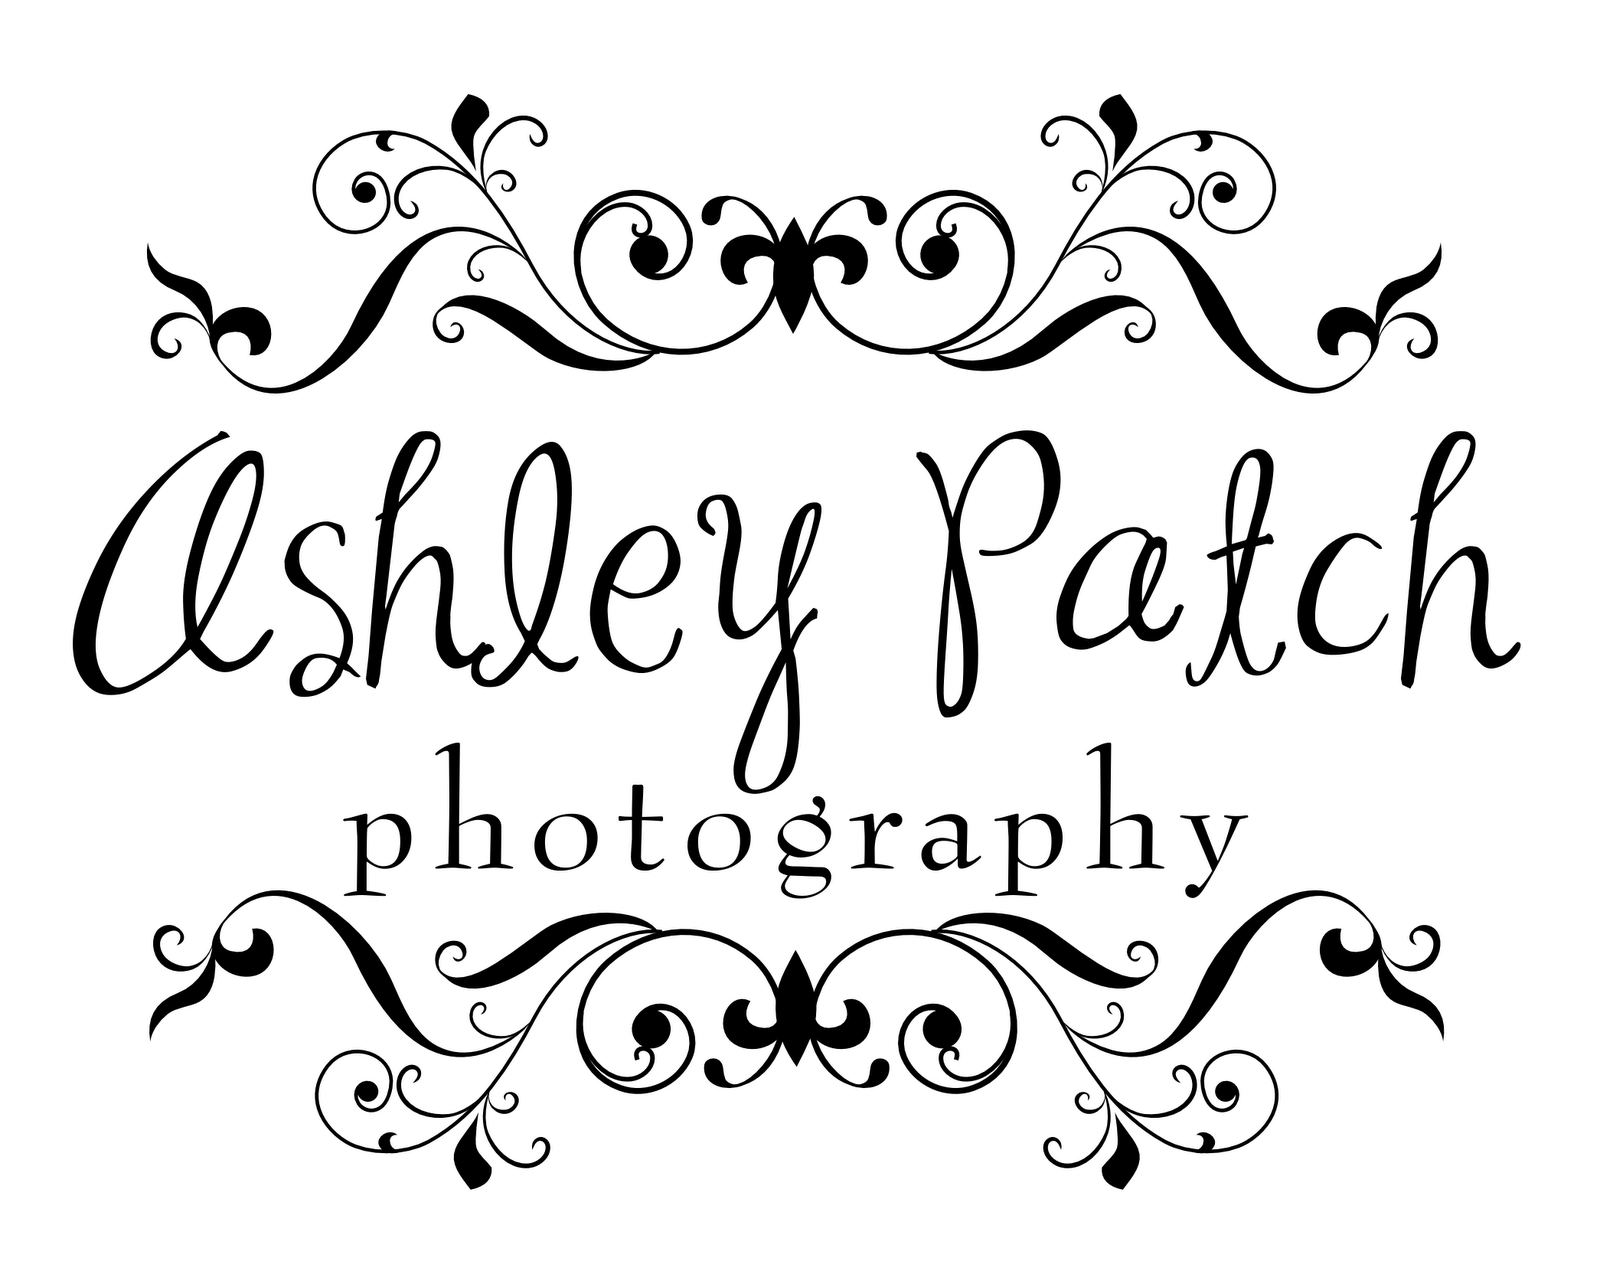 Signatures by Sarah: Business branding | Ashley Patch Photography